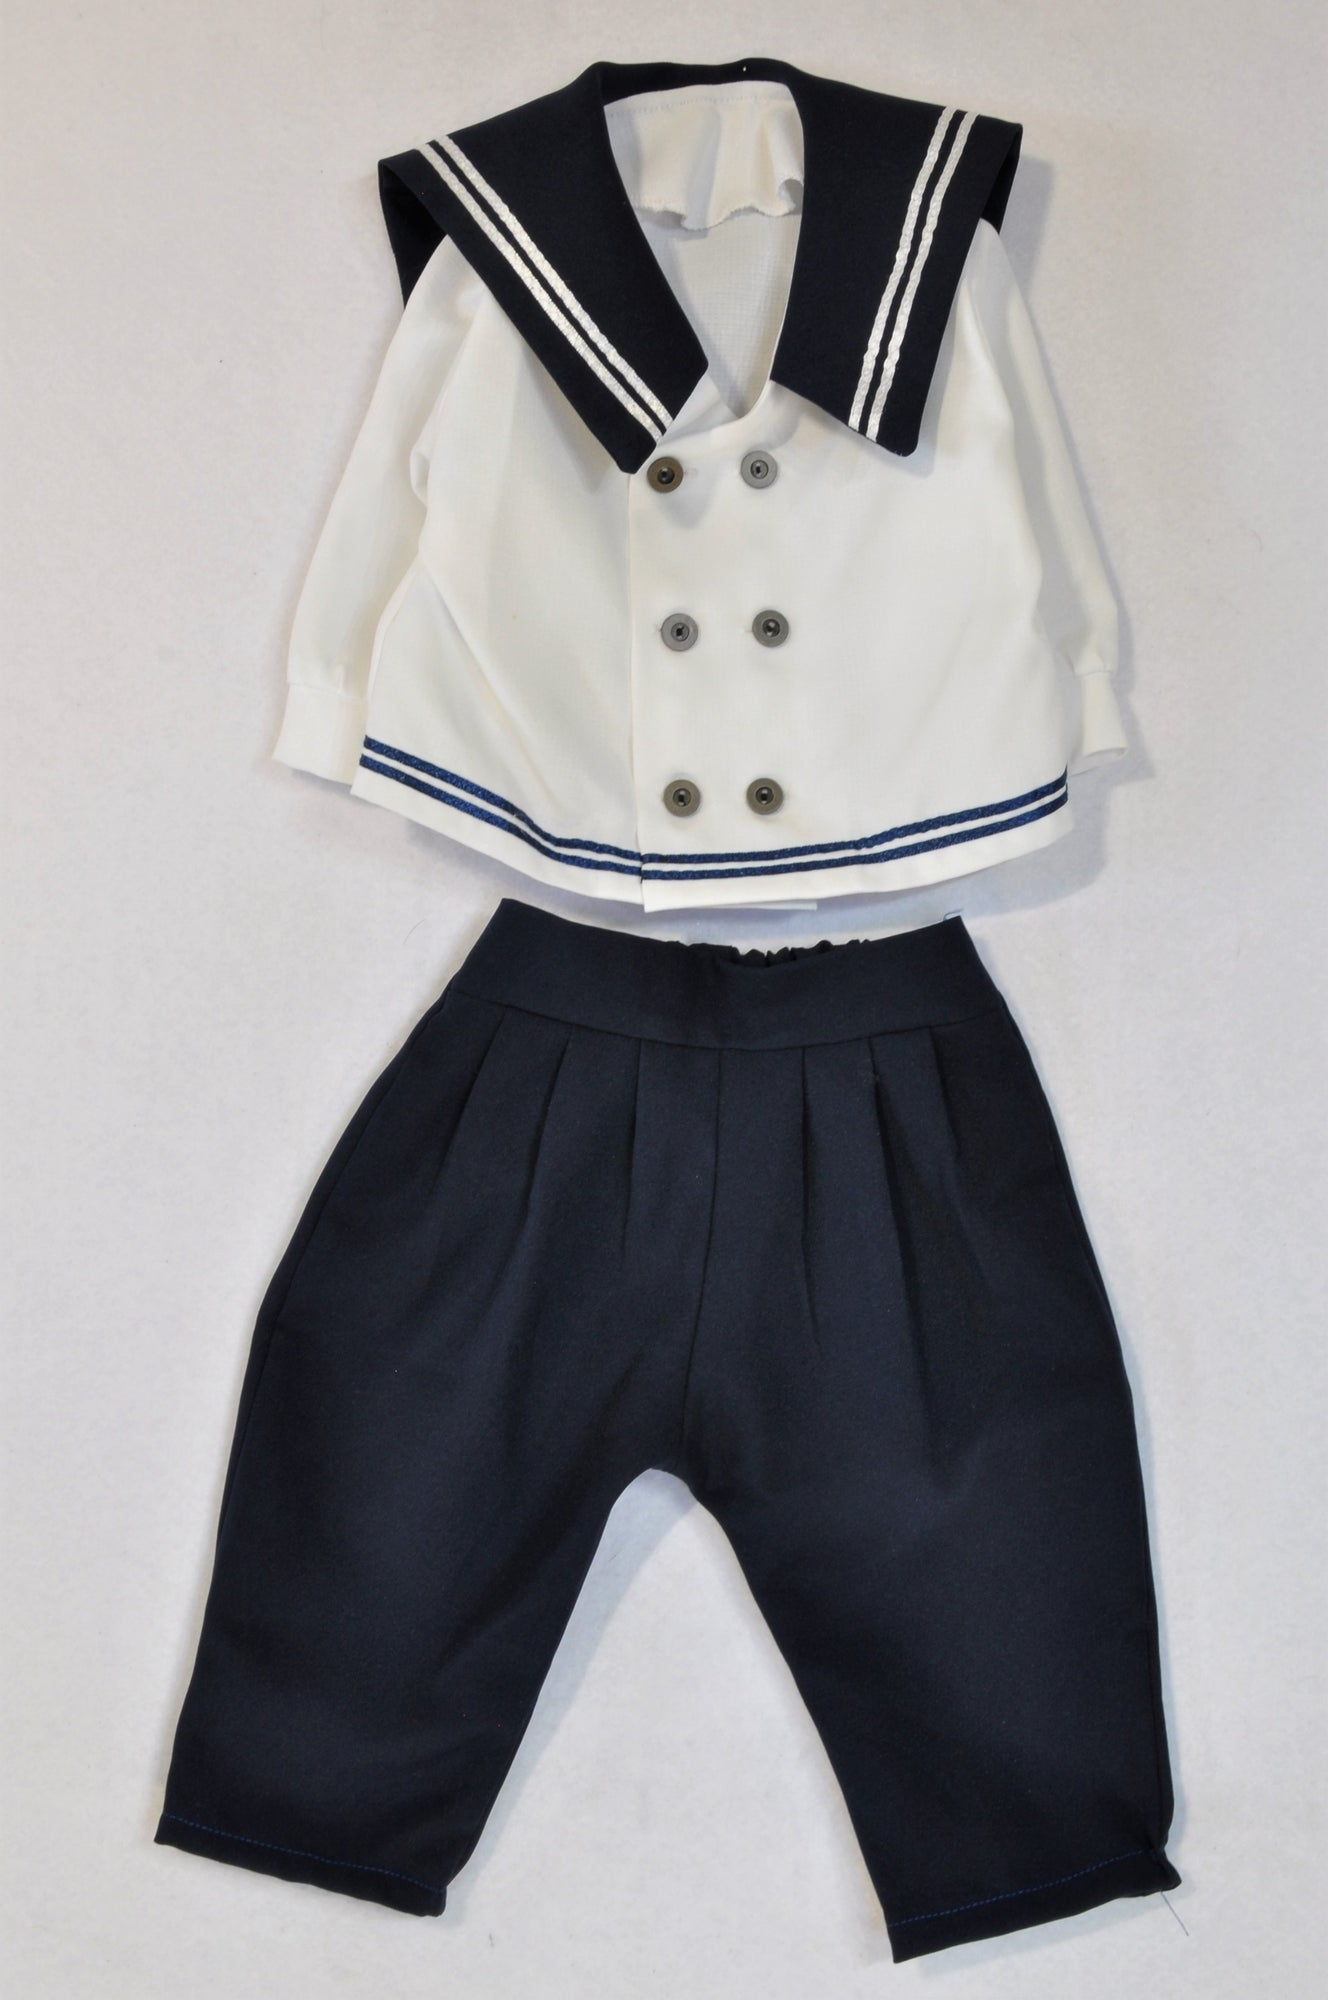 Unbranded Navy & White Sailors Two Piece Outfit Unisex 3-6 months